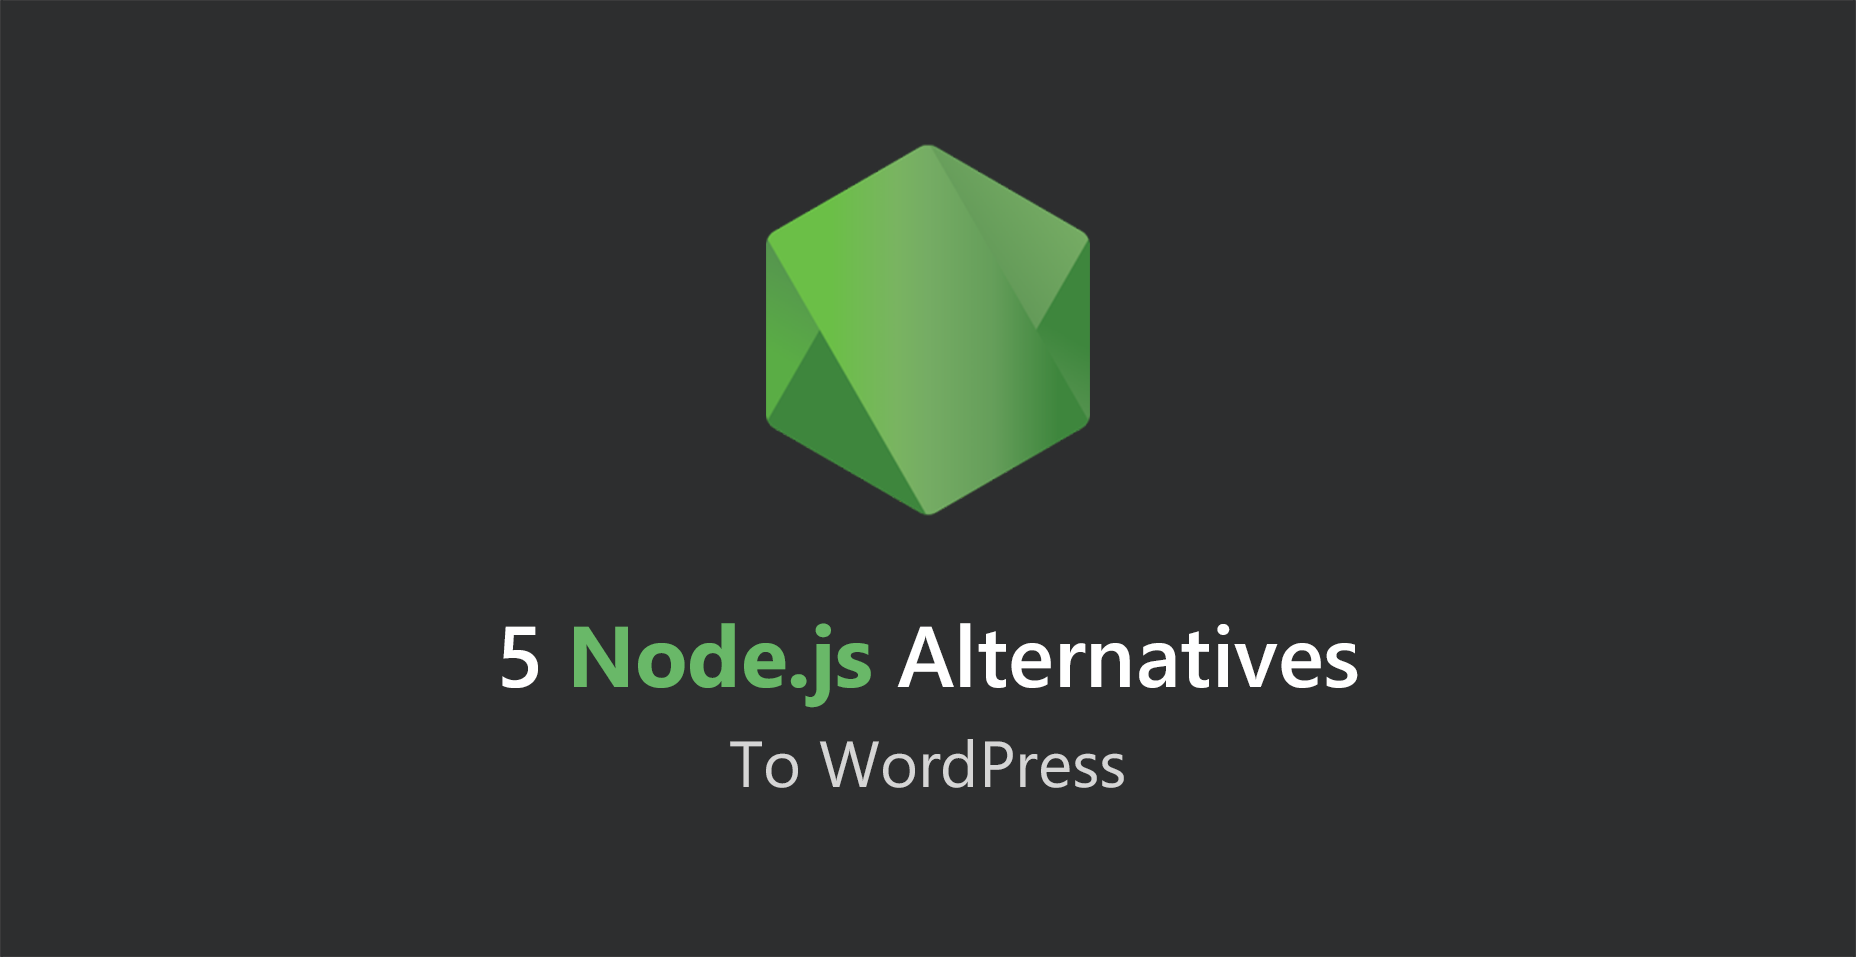 5 Node js Alternatives To WordPress - Tutorialzine